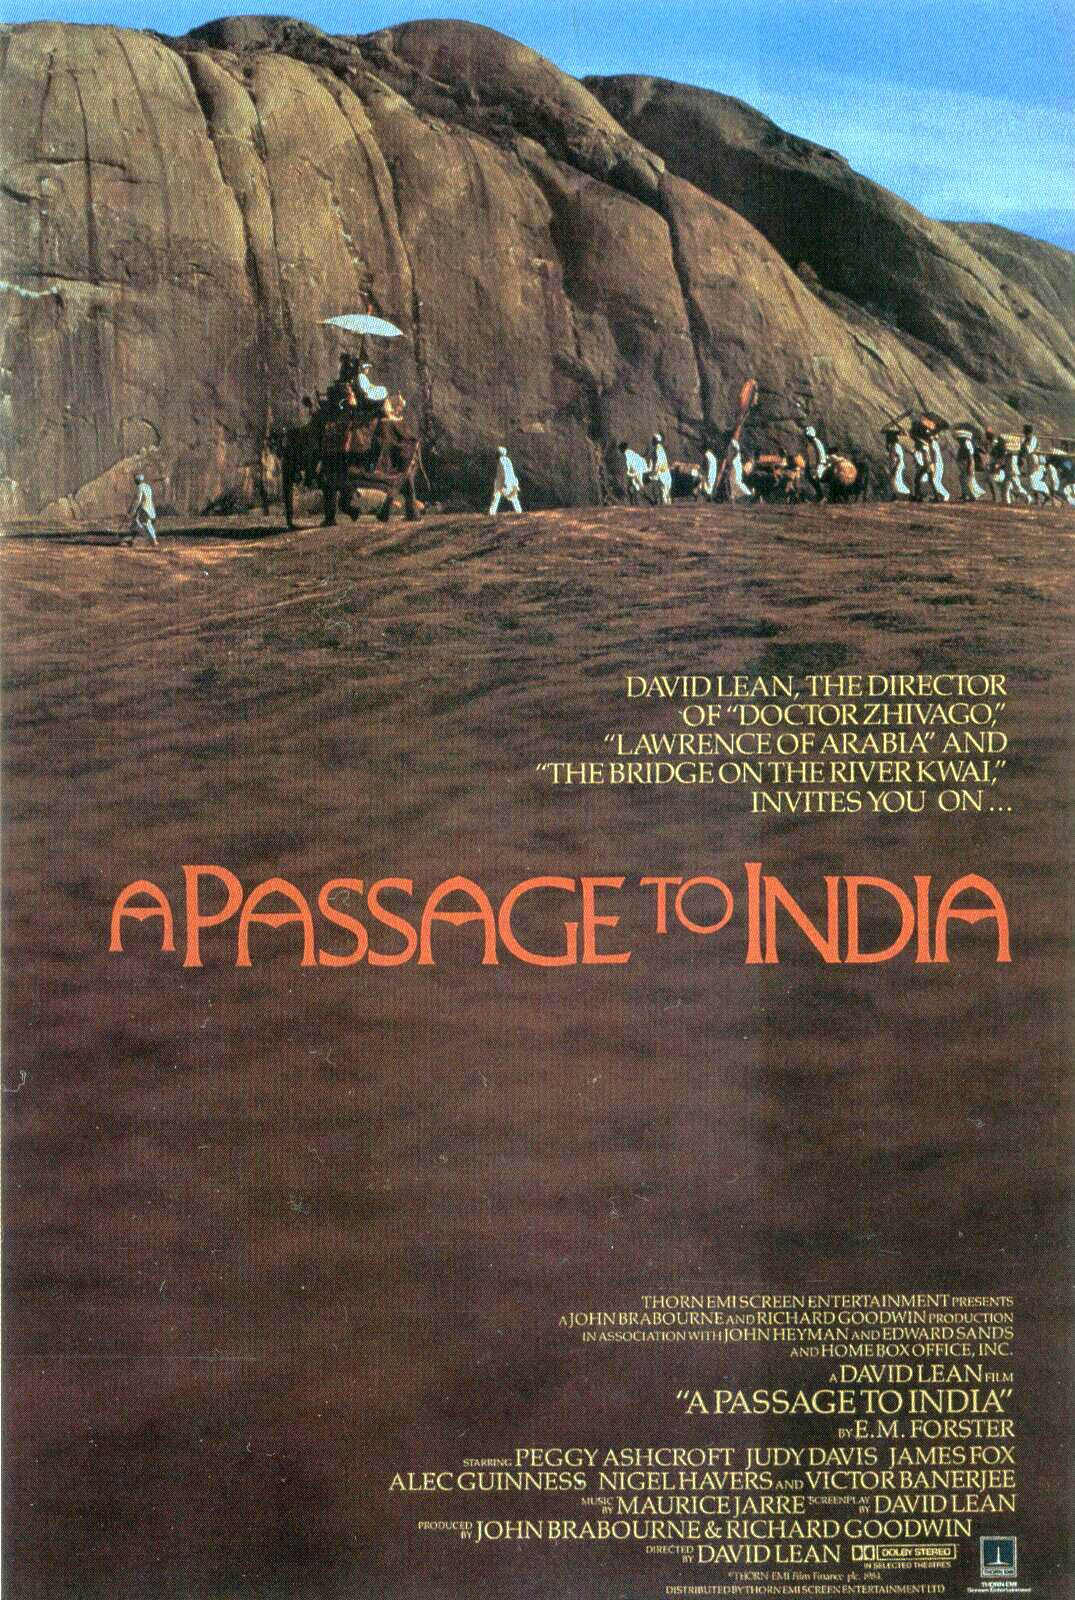 A Passage to India (1984) - Directed by: David LeanStarring: Judy Davis, Victor Banerjee, Peggy Ashcroft, James Fox, Alec GuinnessRated: PGRunning Time: 2 h 44 mTMM Score: 3 stars out of 5STRENGTHS: Cinematography, Production Design, Acting, DirectingWEAKNESSES: Cultural Appropriation, Pacing